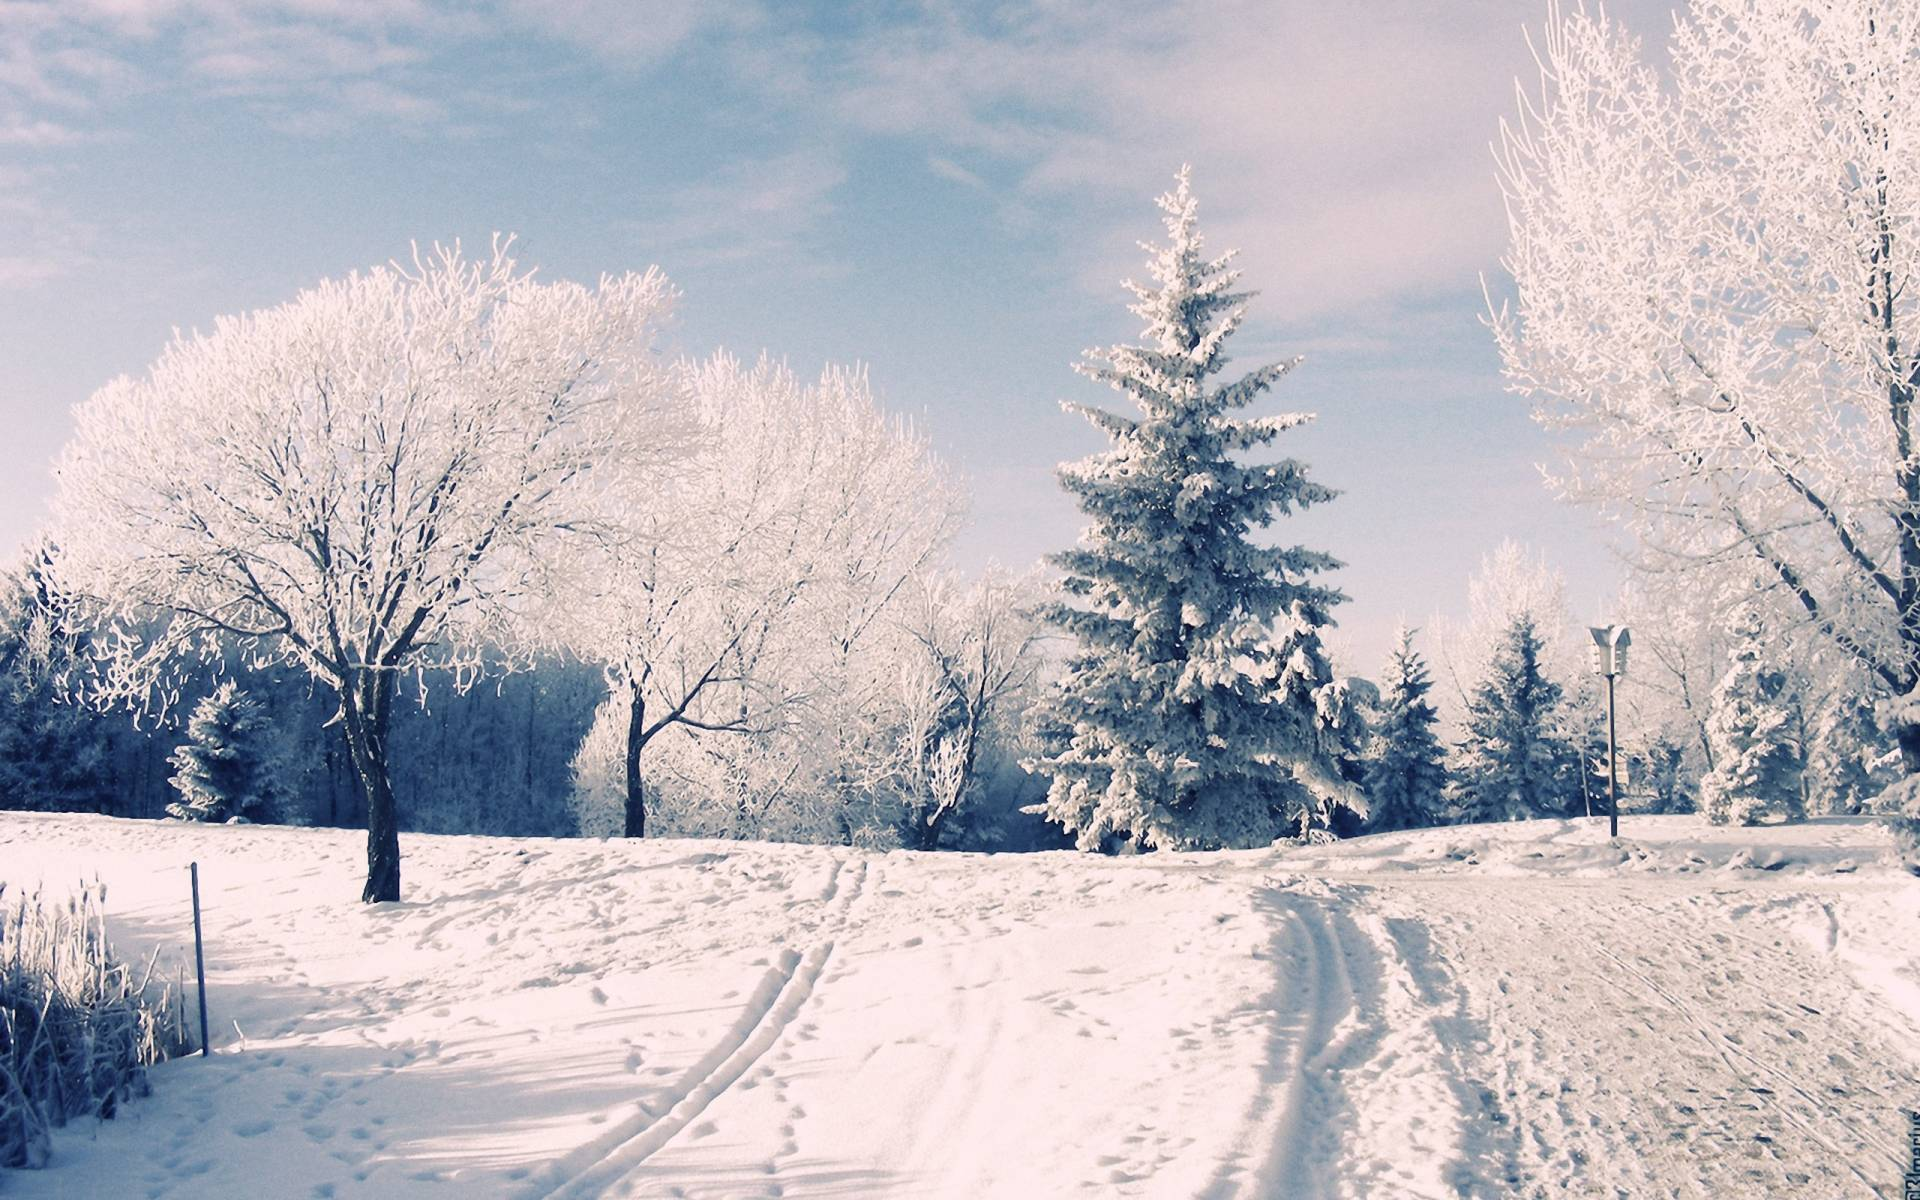 Beautiful Wallpaper Macbook Snow - BVbIbzS  HD_97139.jpg